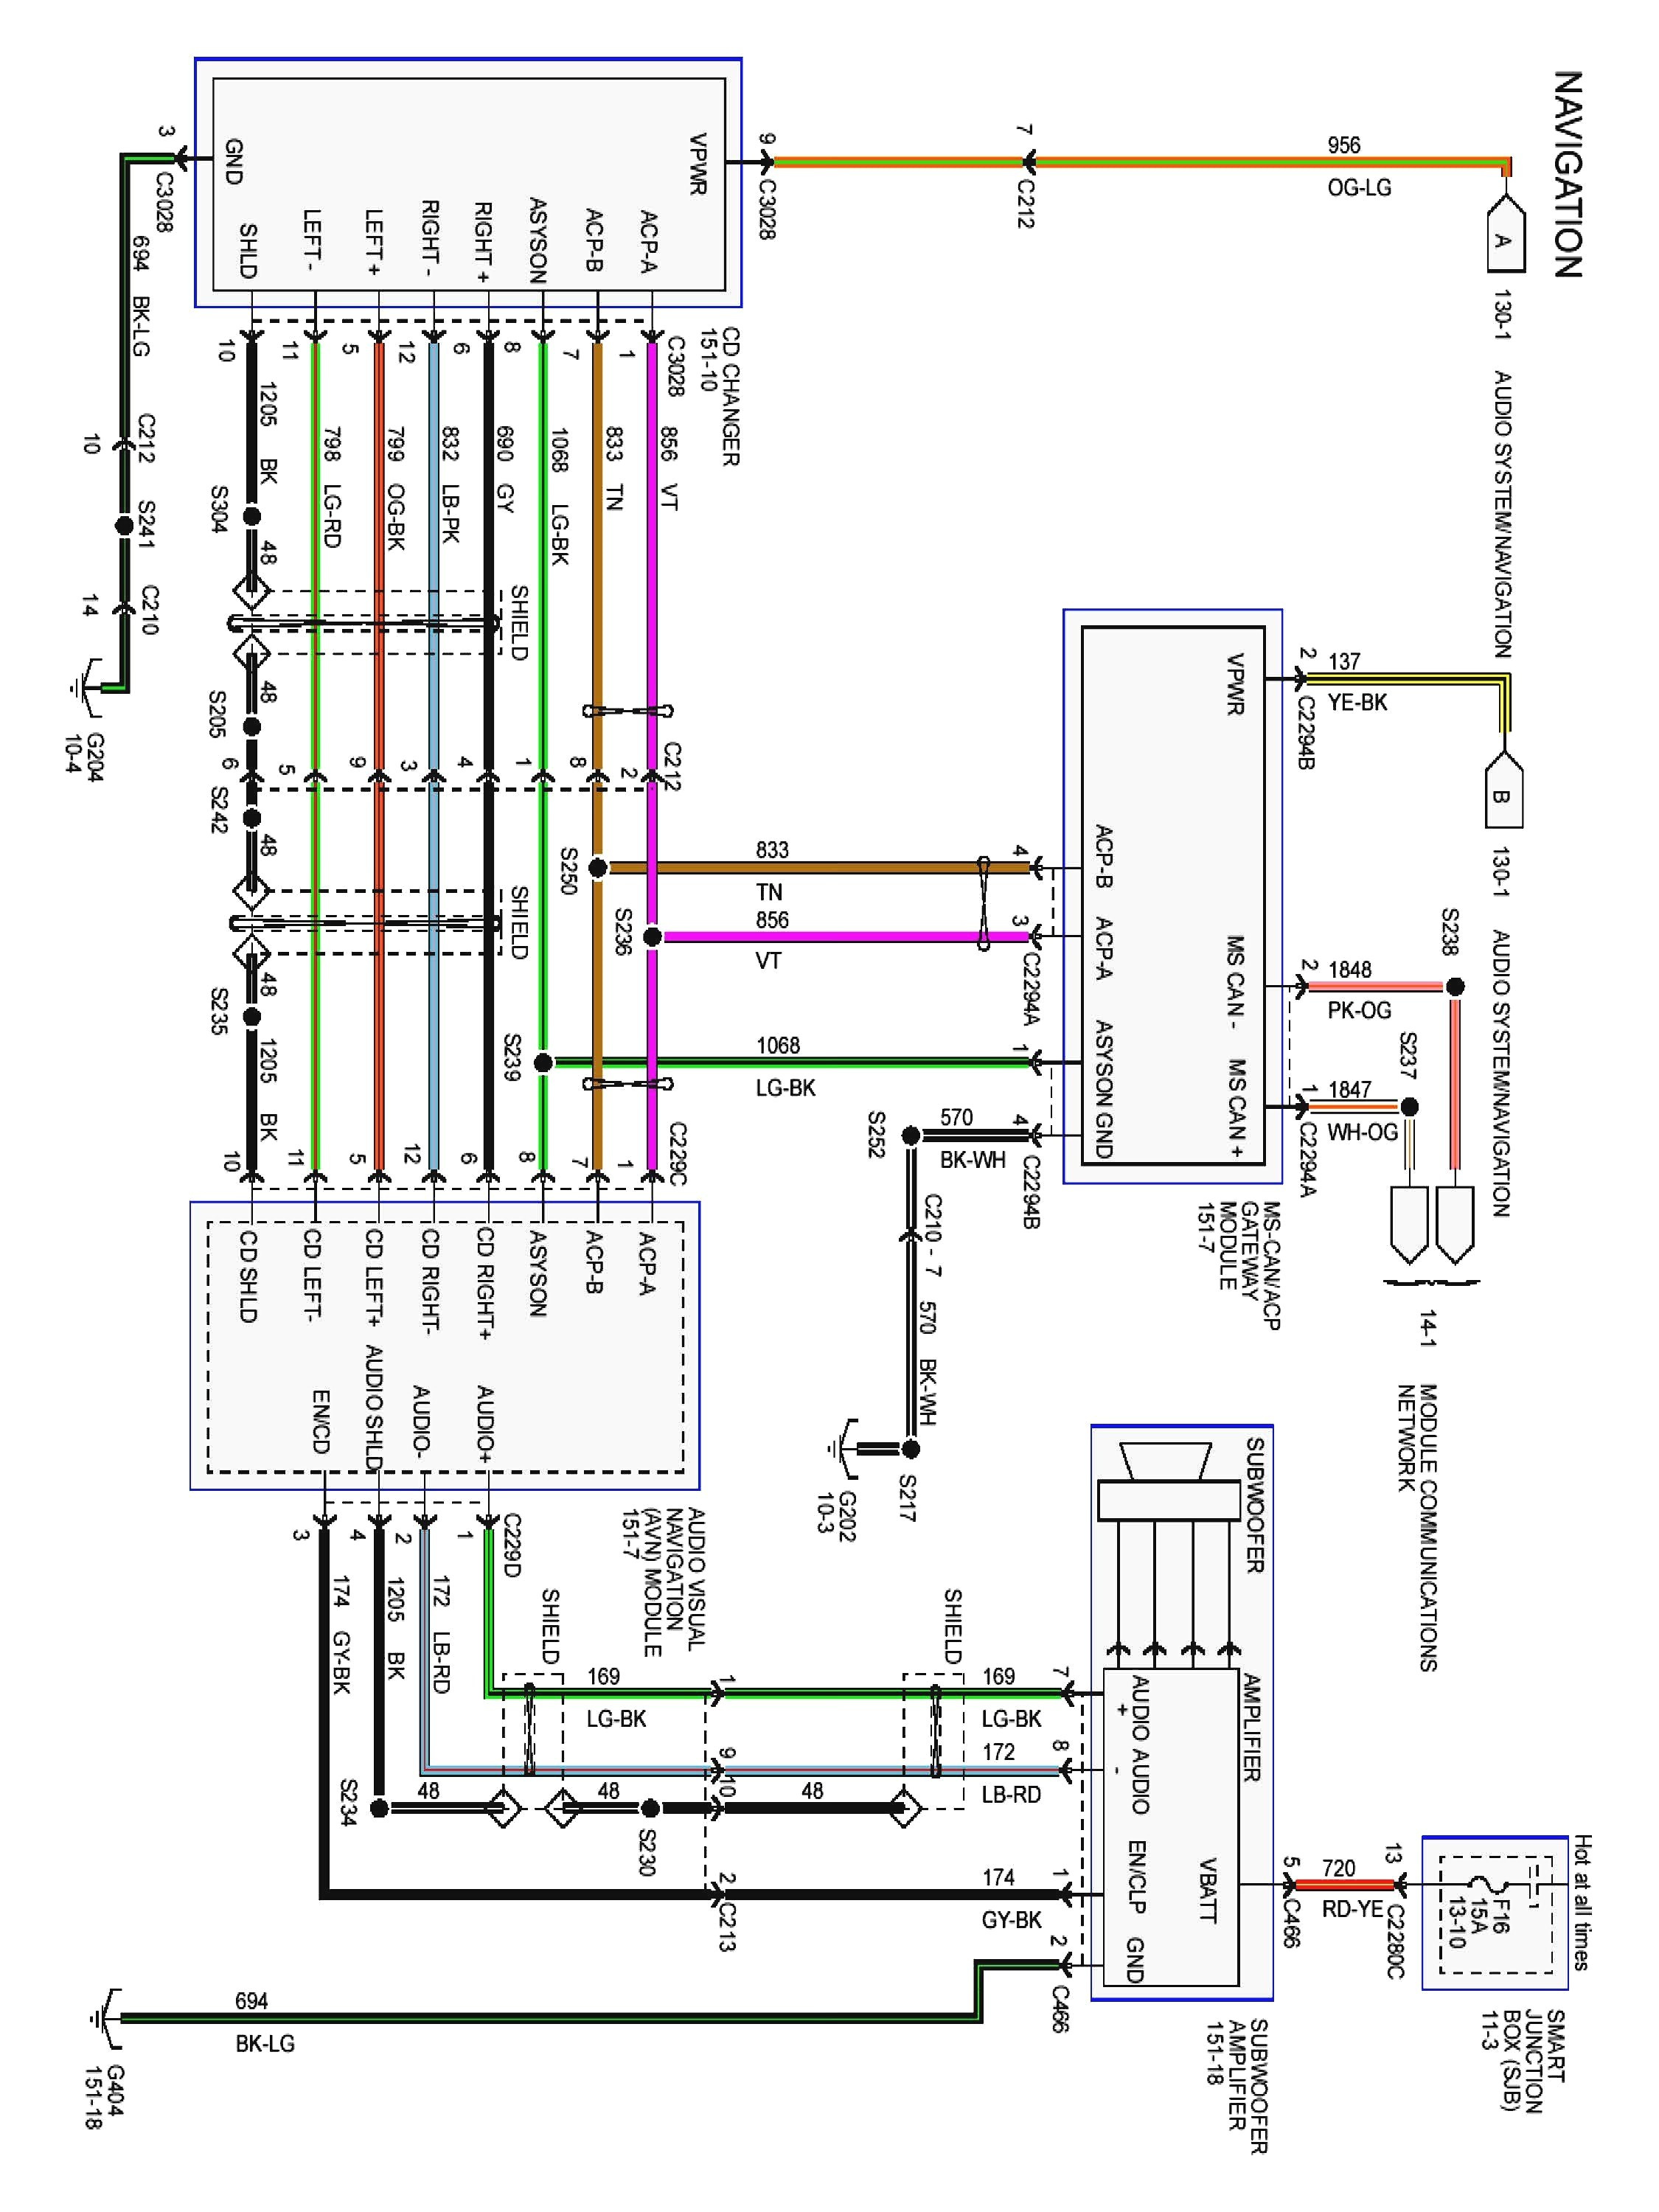 [DHAV_9290]  KM_3114] 2005 Ford Escape Hybrid Fuse Box Diagram Schematic Wiring | 2008 Ford Escape Fuse Box |  | Tixat Trons Mohammedshrine Librar Wiring 101